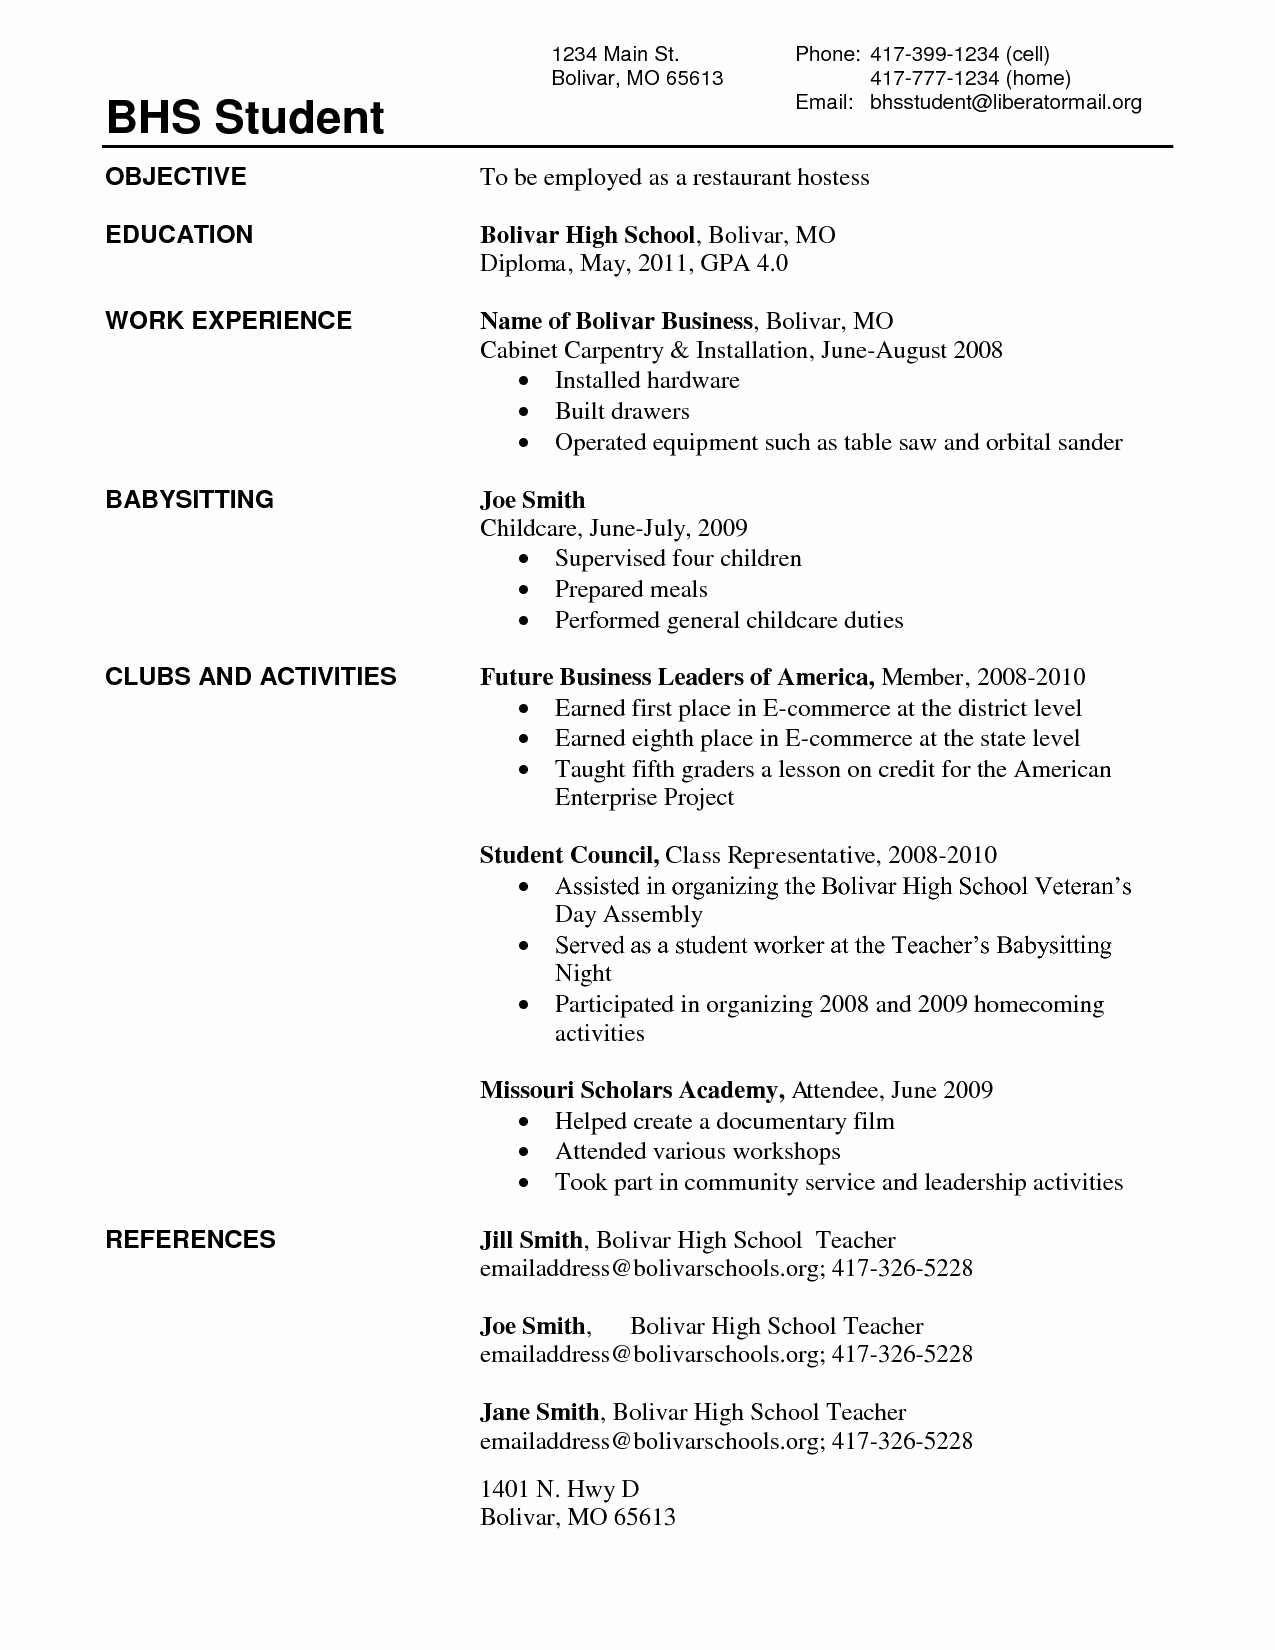 I Need Help Writing My Resume Help Writing My Resume